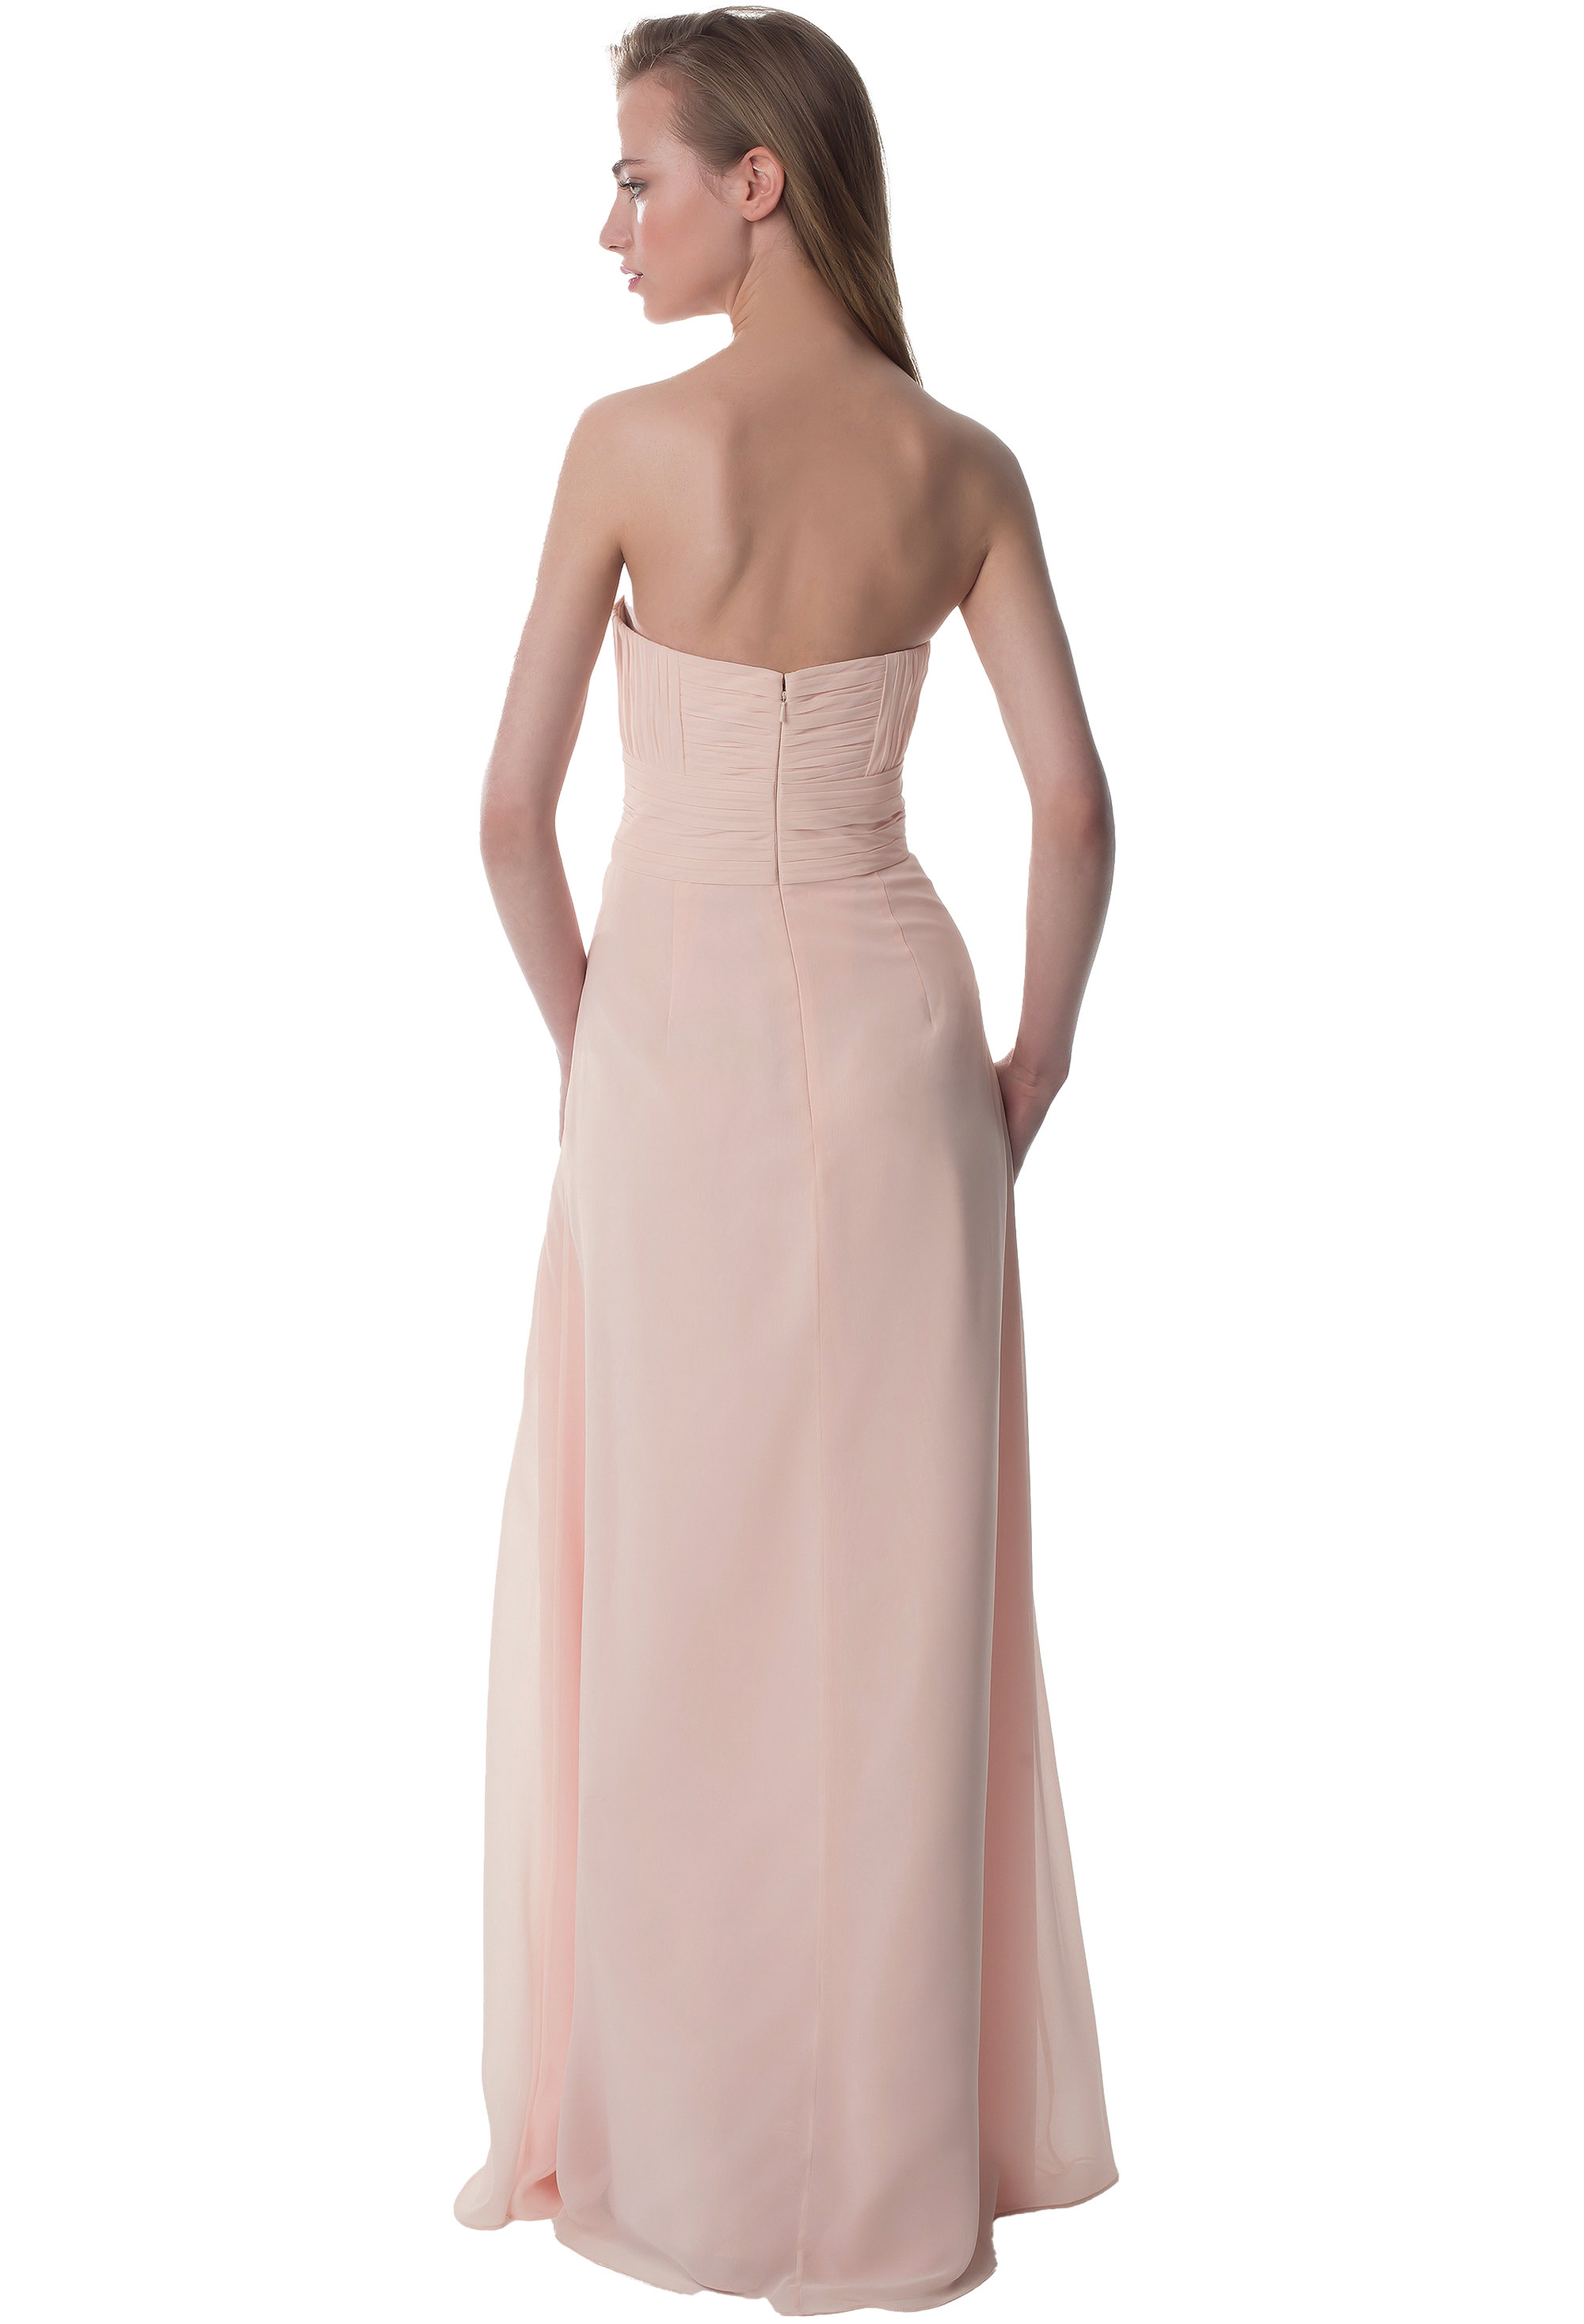 Bill Levkoff HEATHER Chiffon Sweetheart A-line gown, $216.00 Back